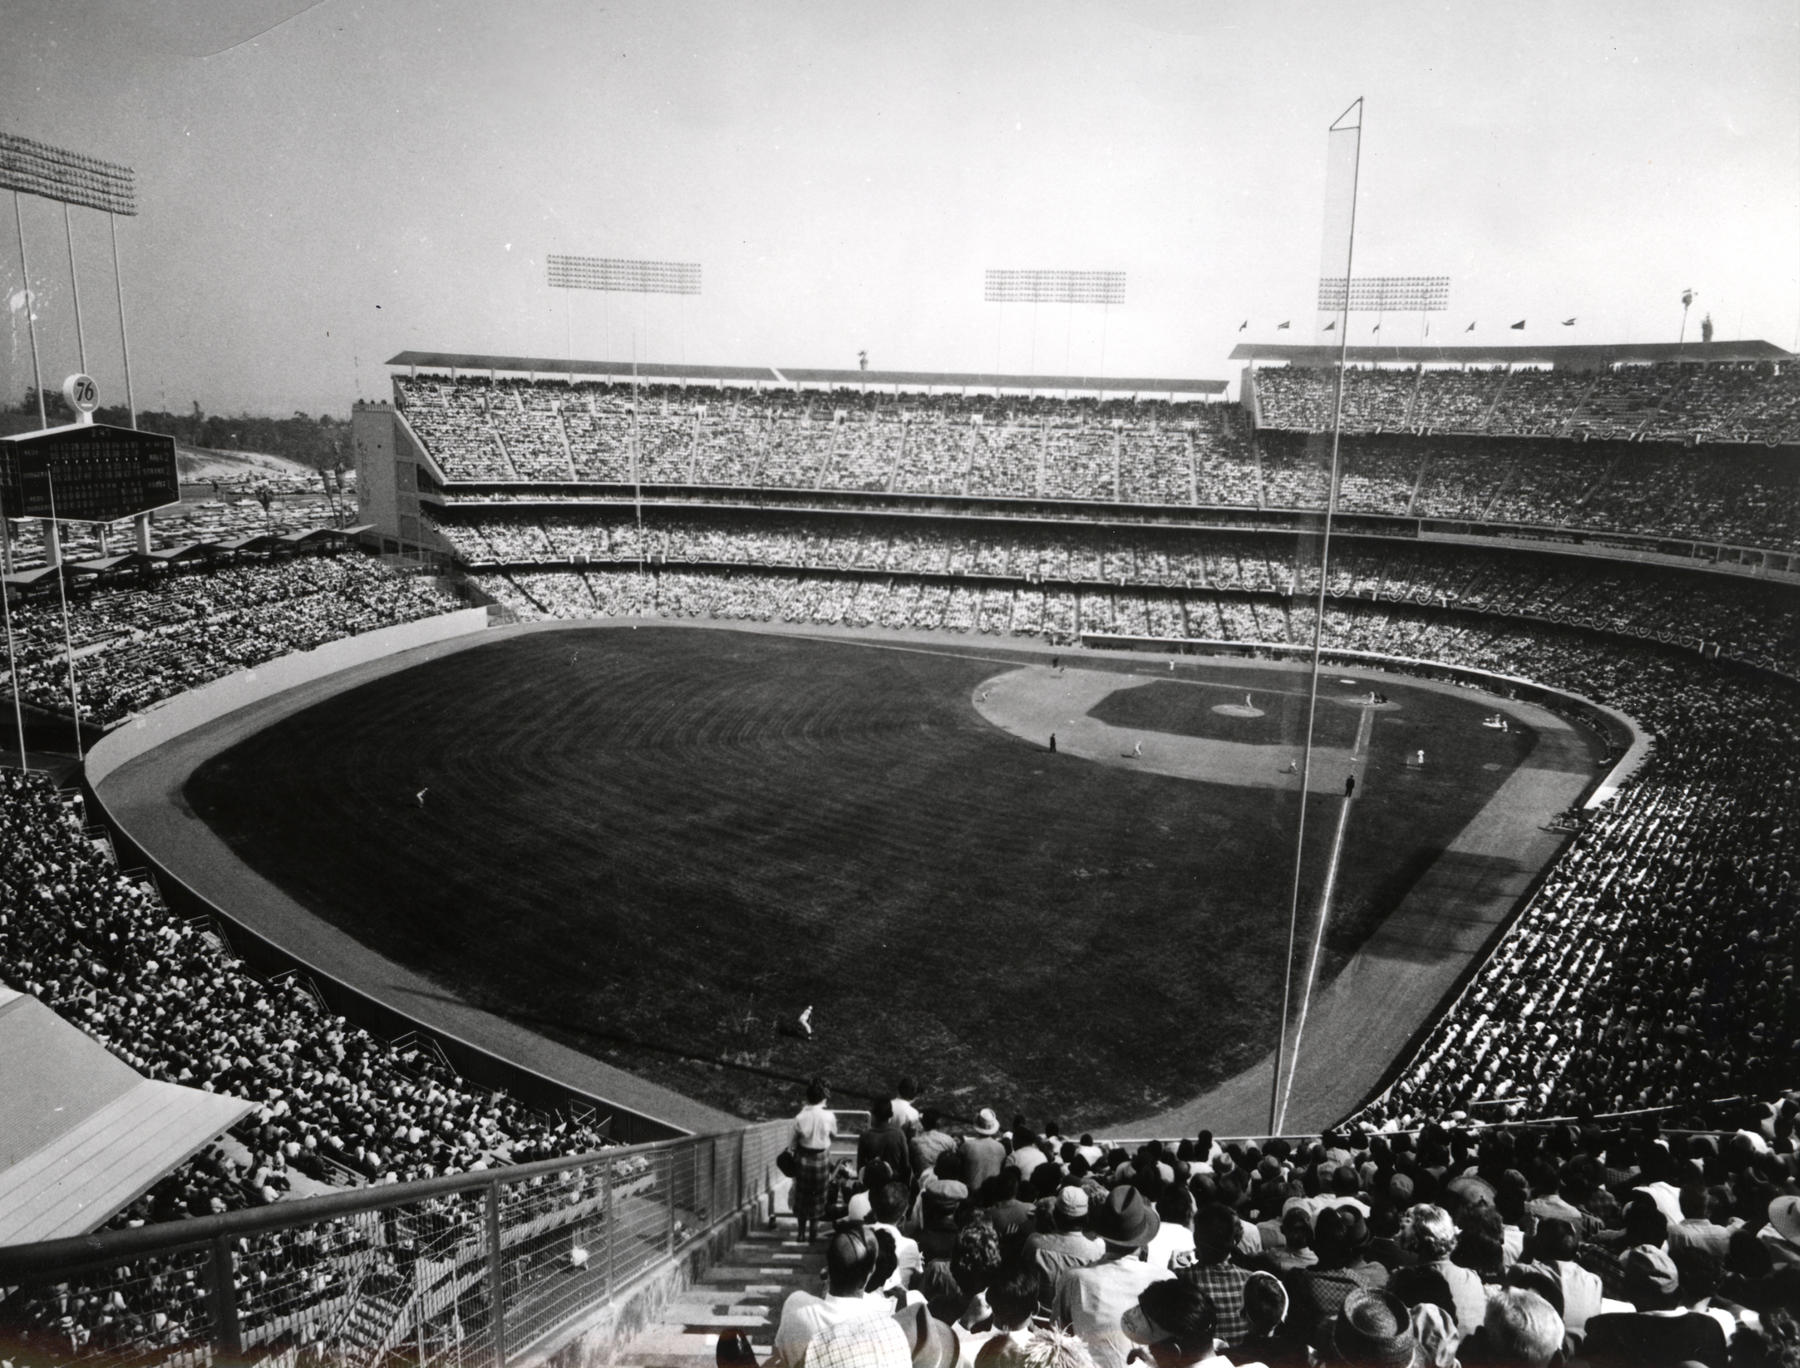 Cavernous Dodger Stadium in Los Angeles has witnessed some of the longest scoreless innings streaks in history by major league pitchers. BL-68-64C (National Baseball Hall of Fame Library)